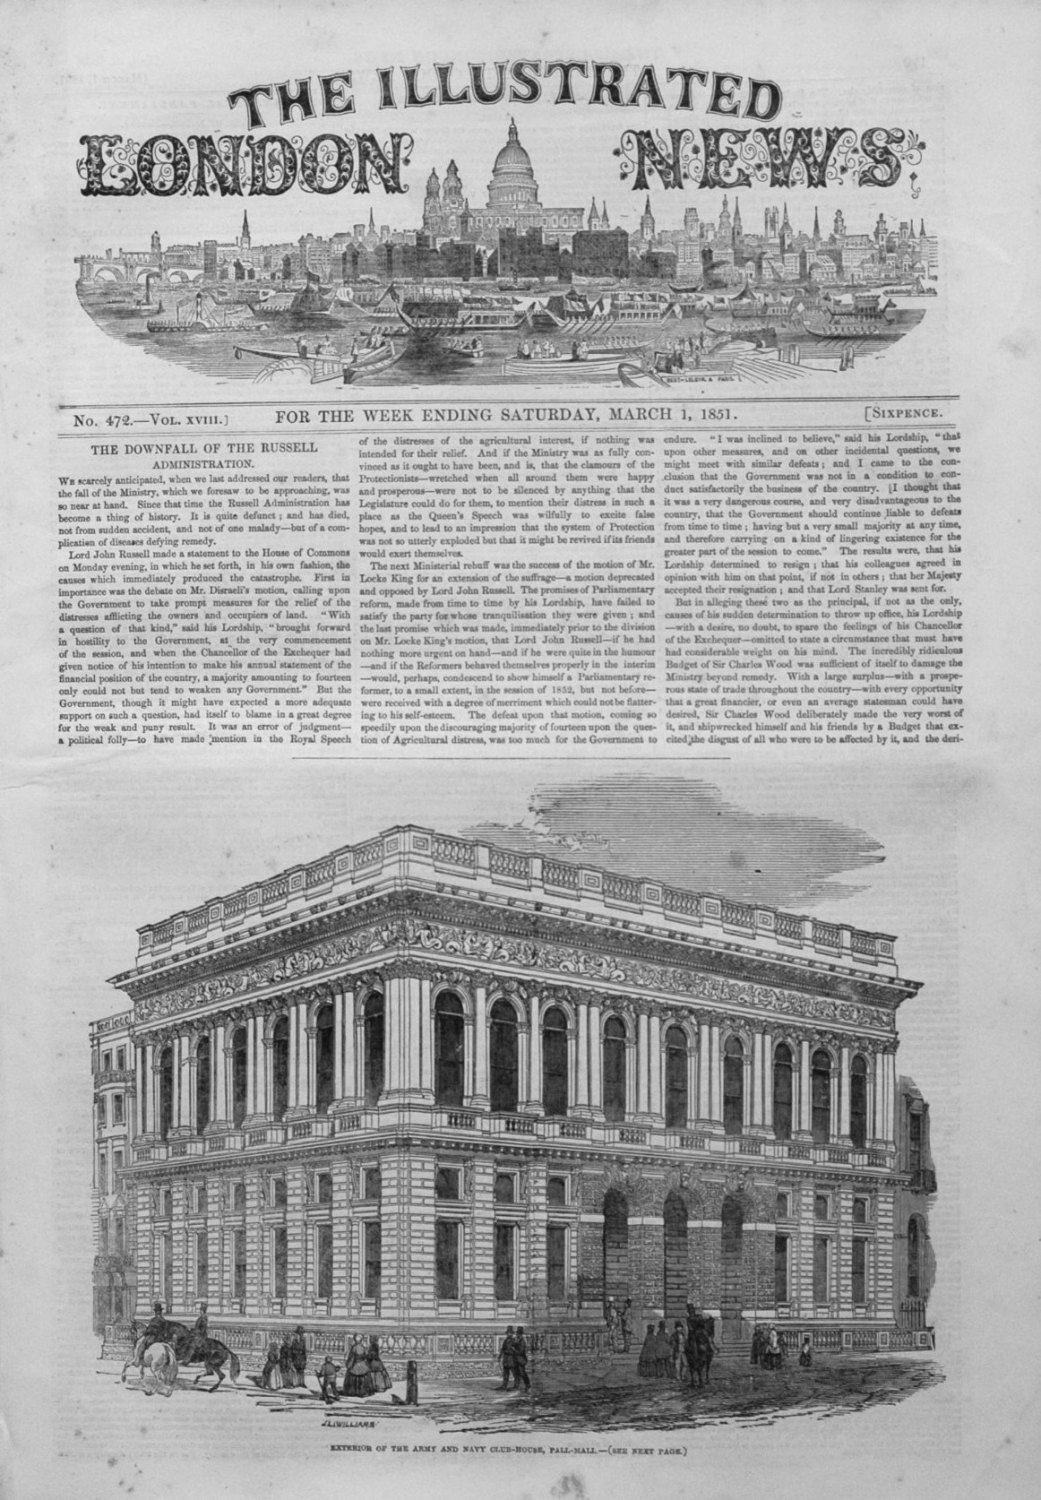 Illustrated london News March 1st 1851.